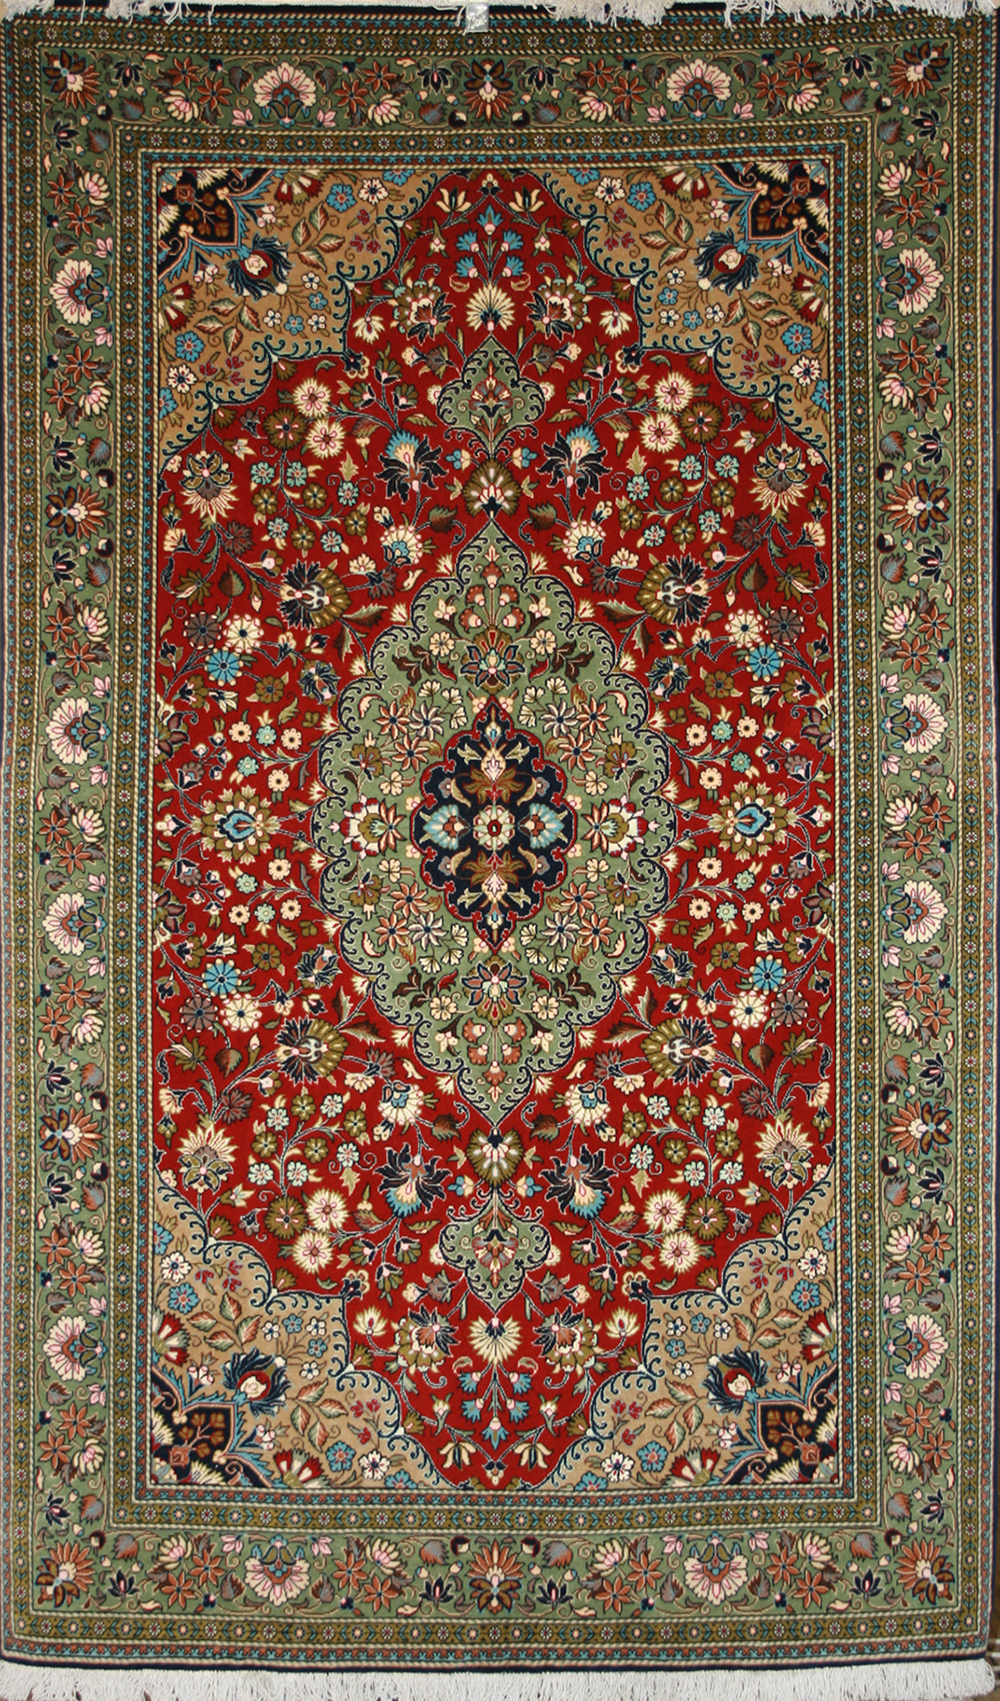 Qum Rug Qom Rug Origin And Description Guide